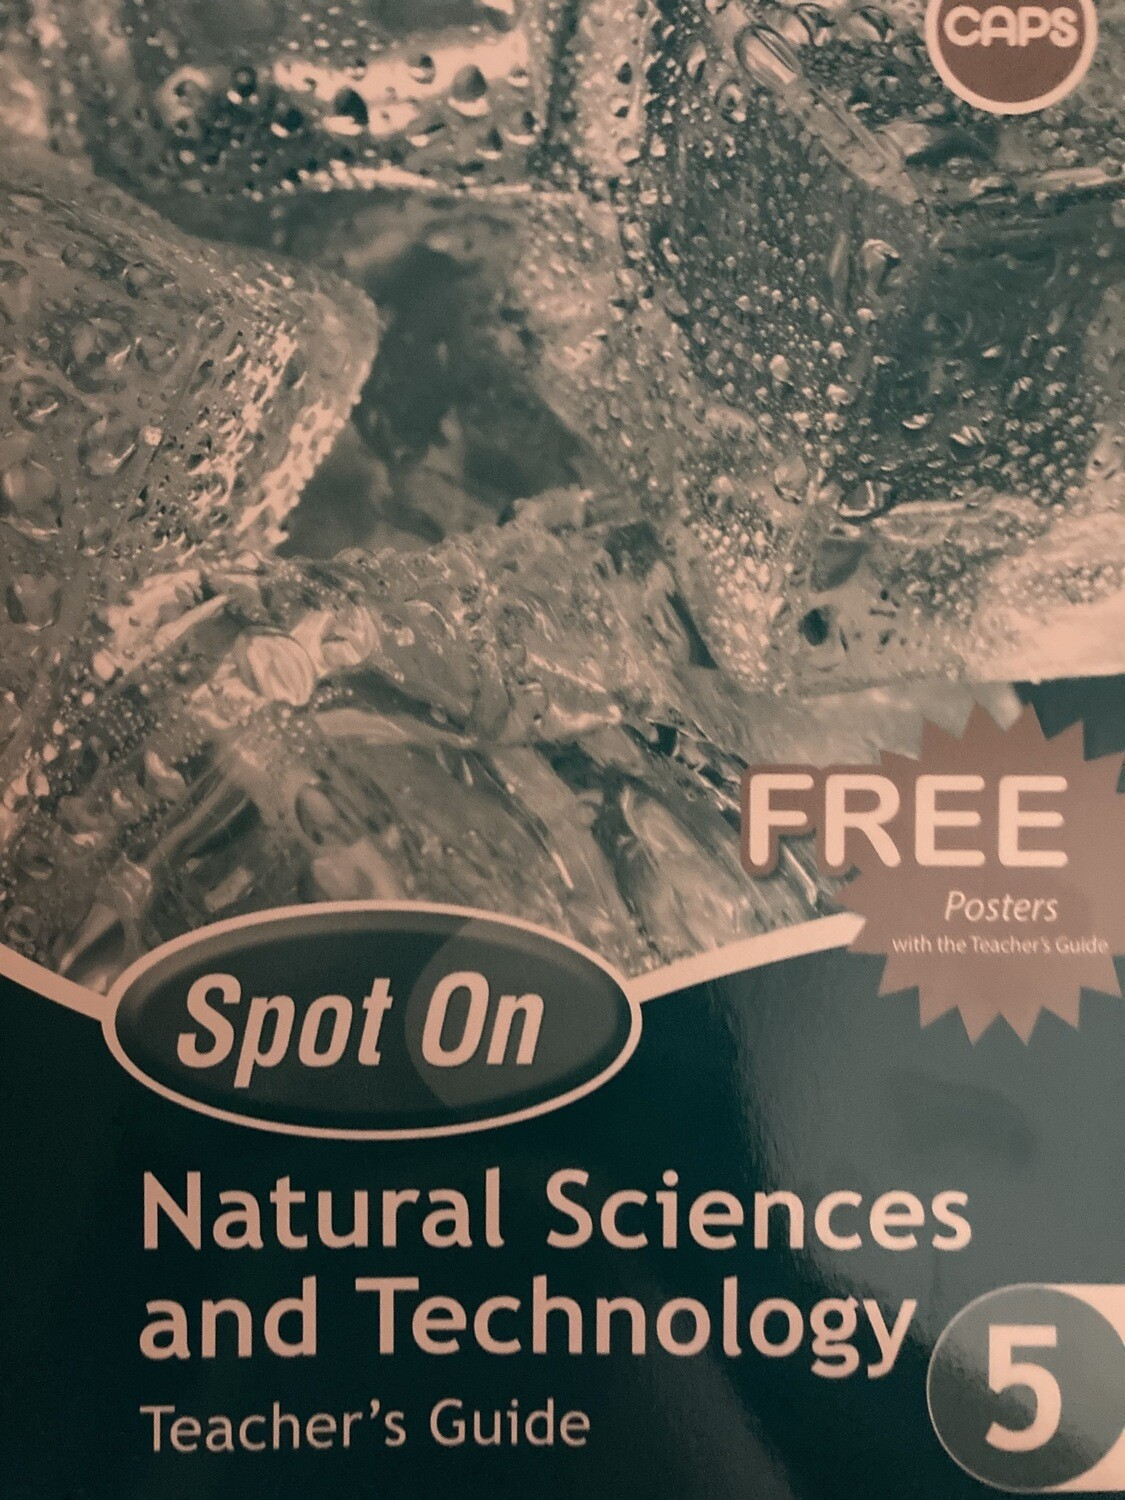 Grade 5 Spot On Natural Sciences And Technology Teachers Guide